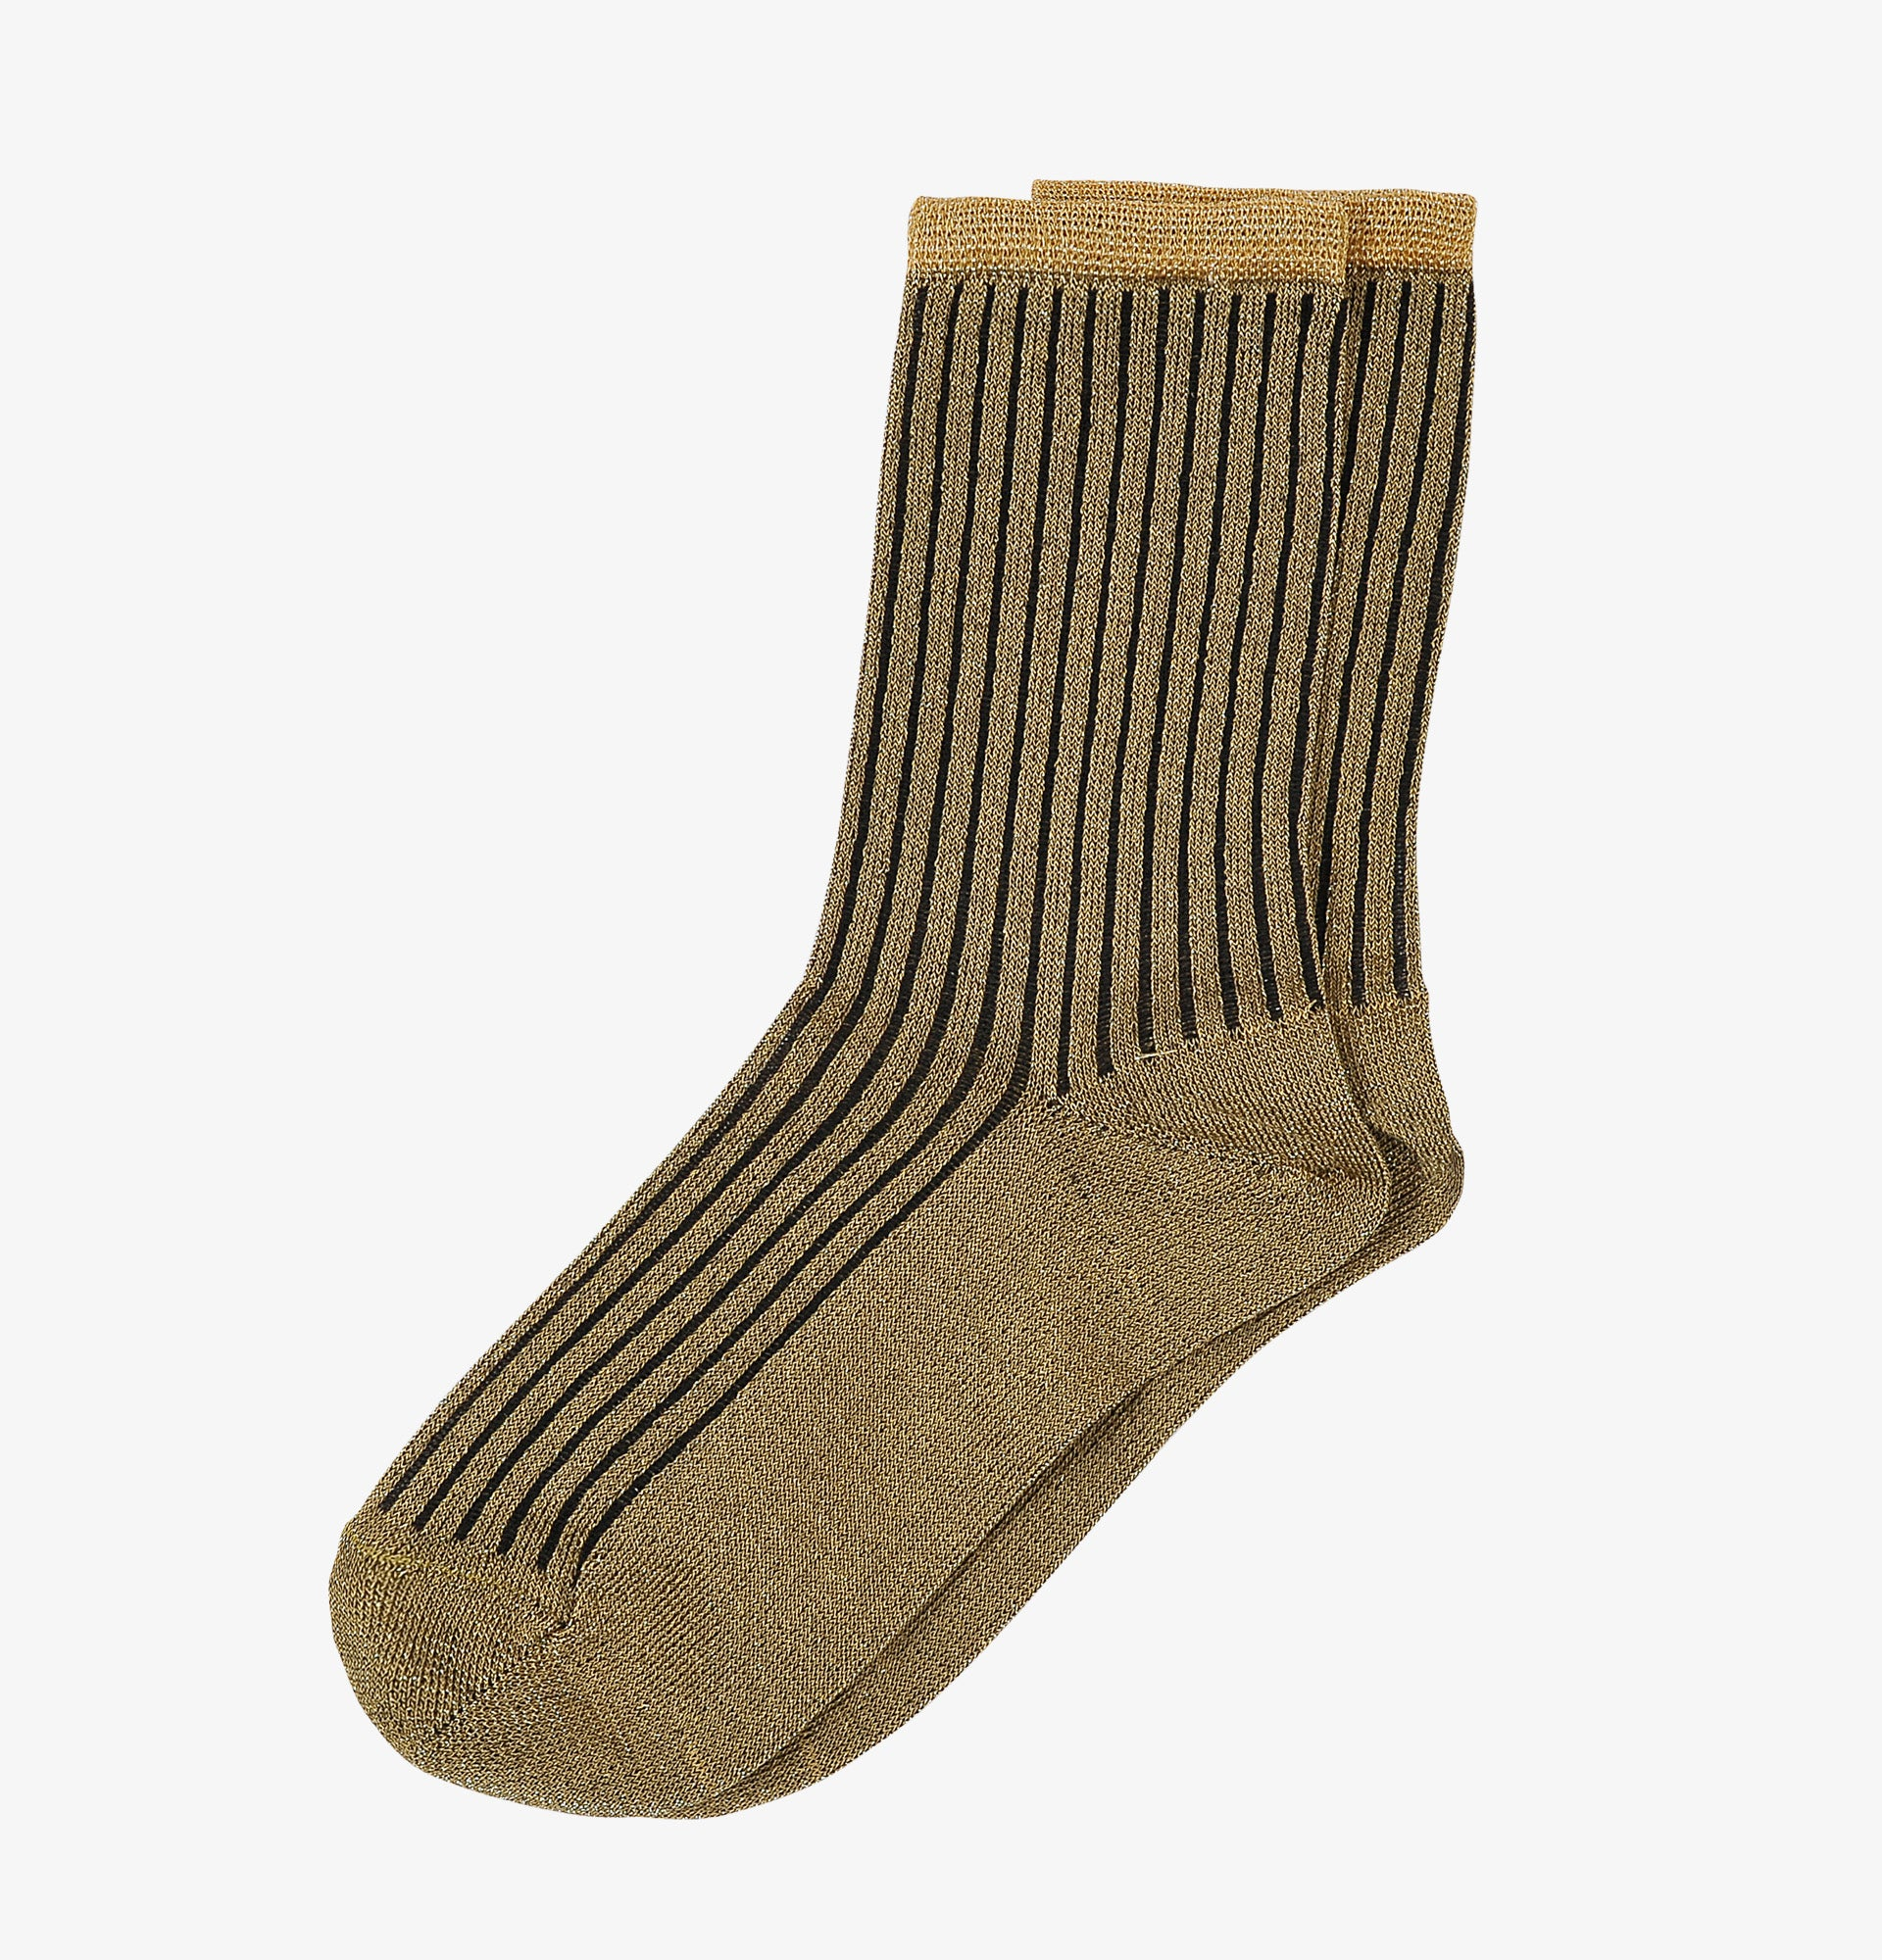 Echine Socks - Gold